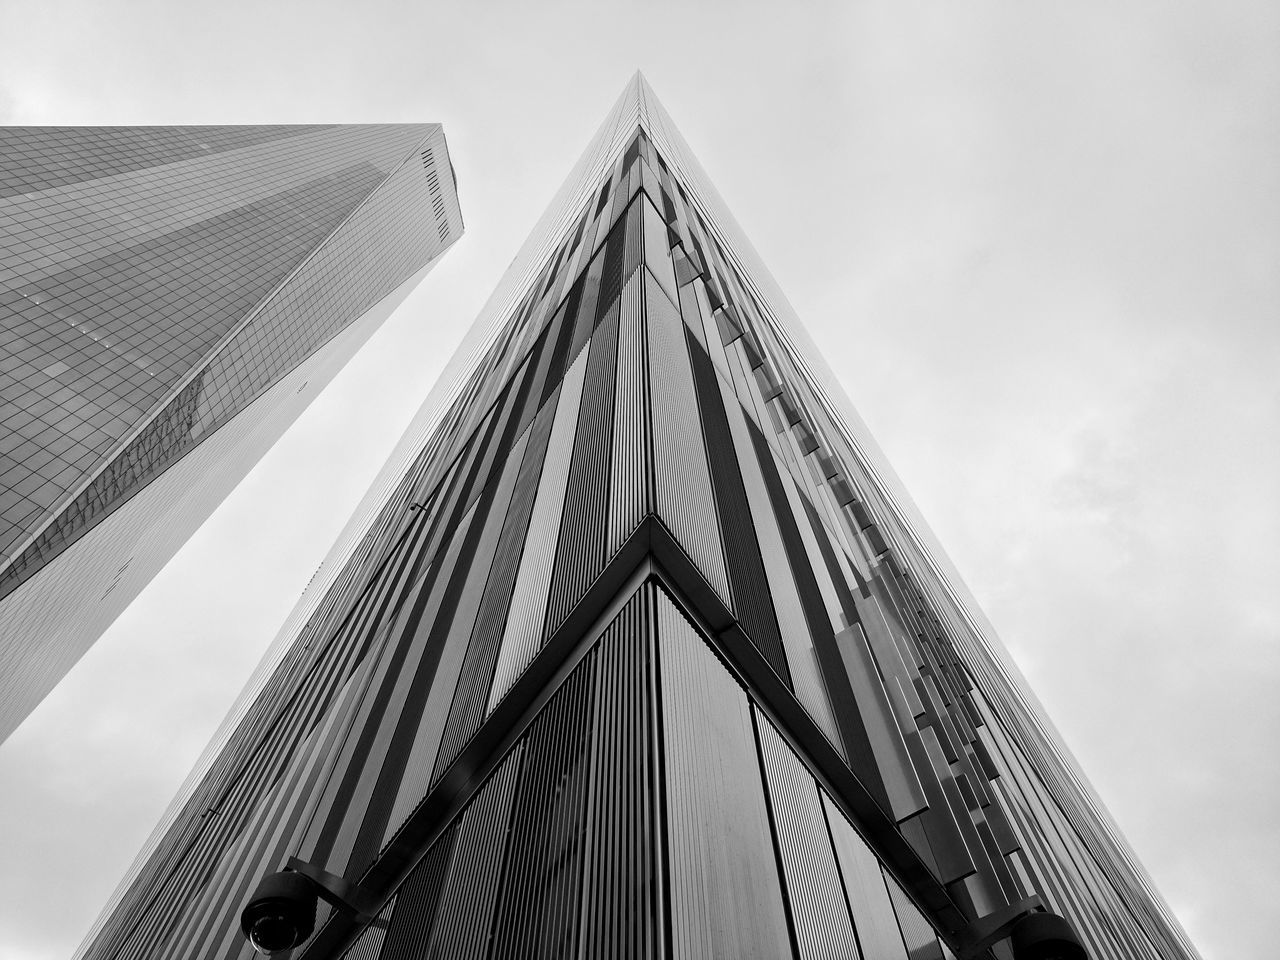 Architecture Built Structure Triangle Shape Low Angle View No People Building Exterior One World Trade Center World Trade Center WTC Building Buildings Architecture City City Building NYC New York City New York Black And White Black & White Black And White Photography Artisitic Look Up Looking Up